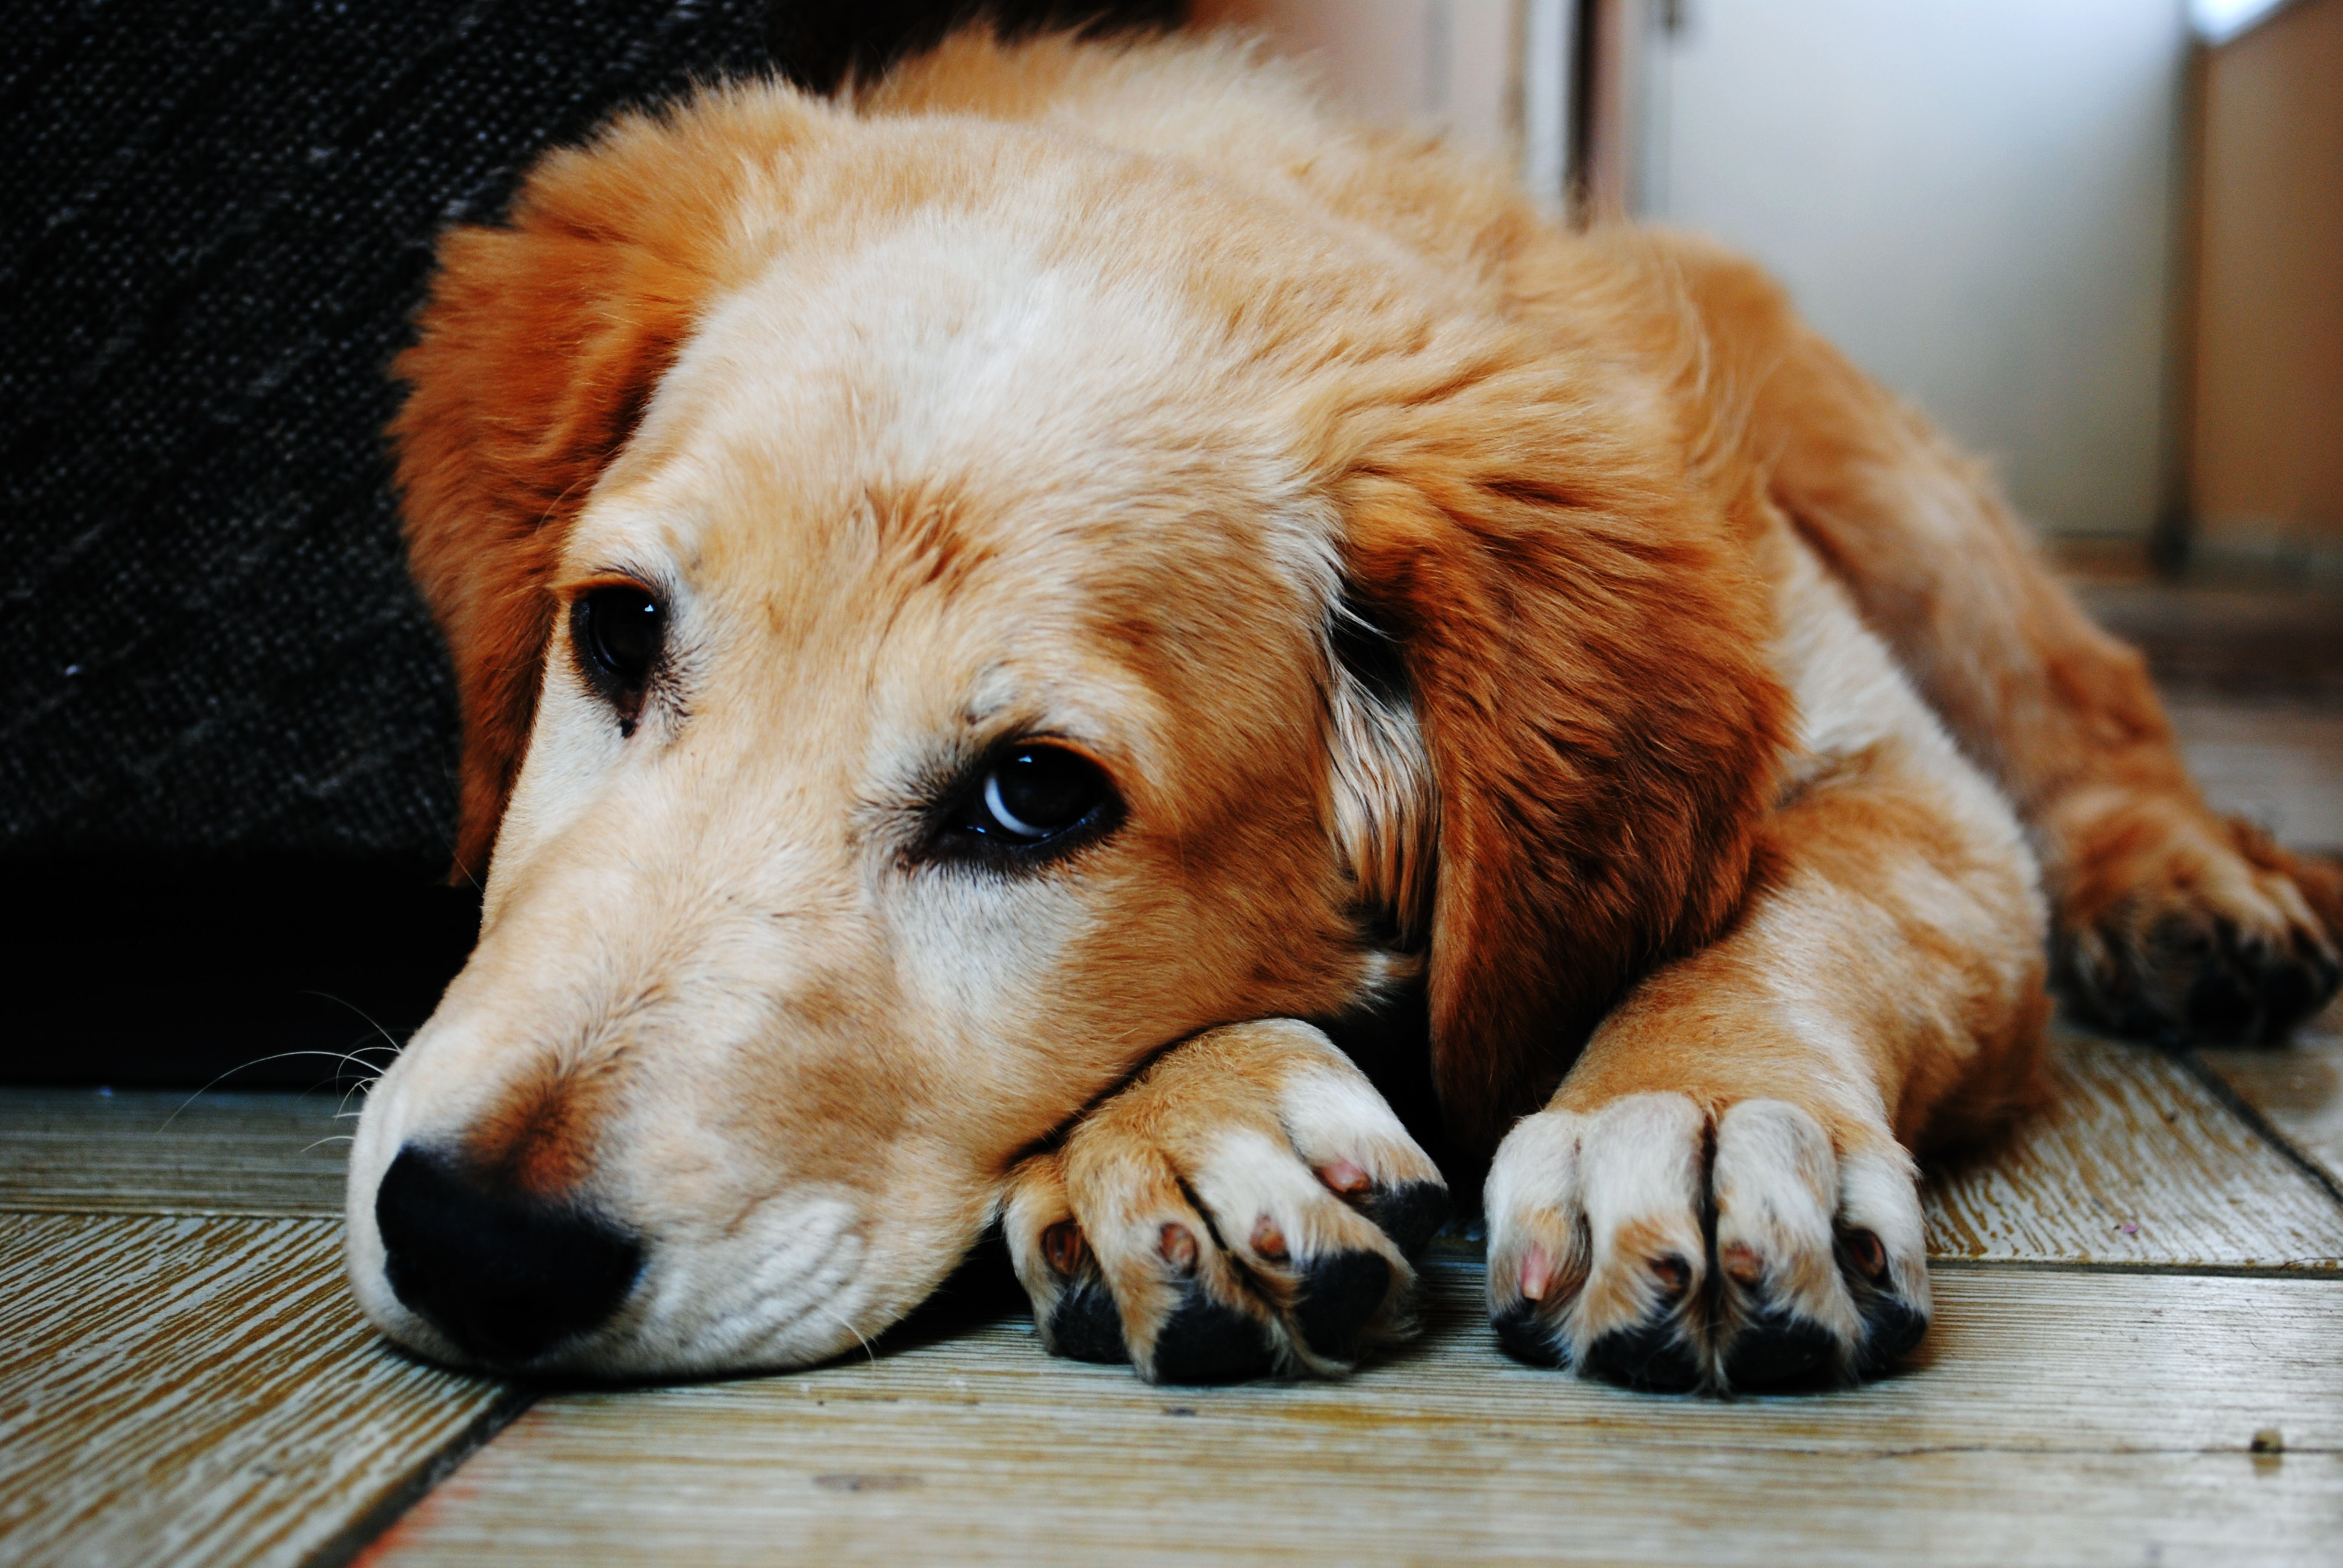 Electrocuted Dogs | Causes, Signs, & Treatment | Vets Now